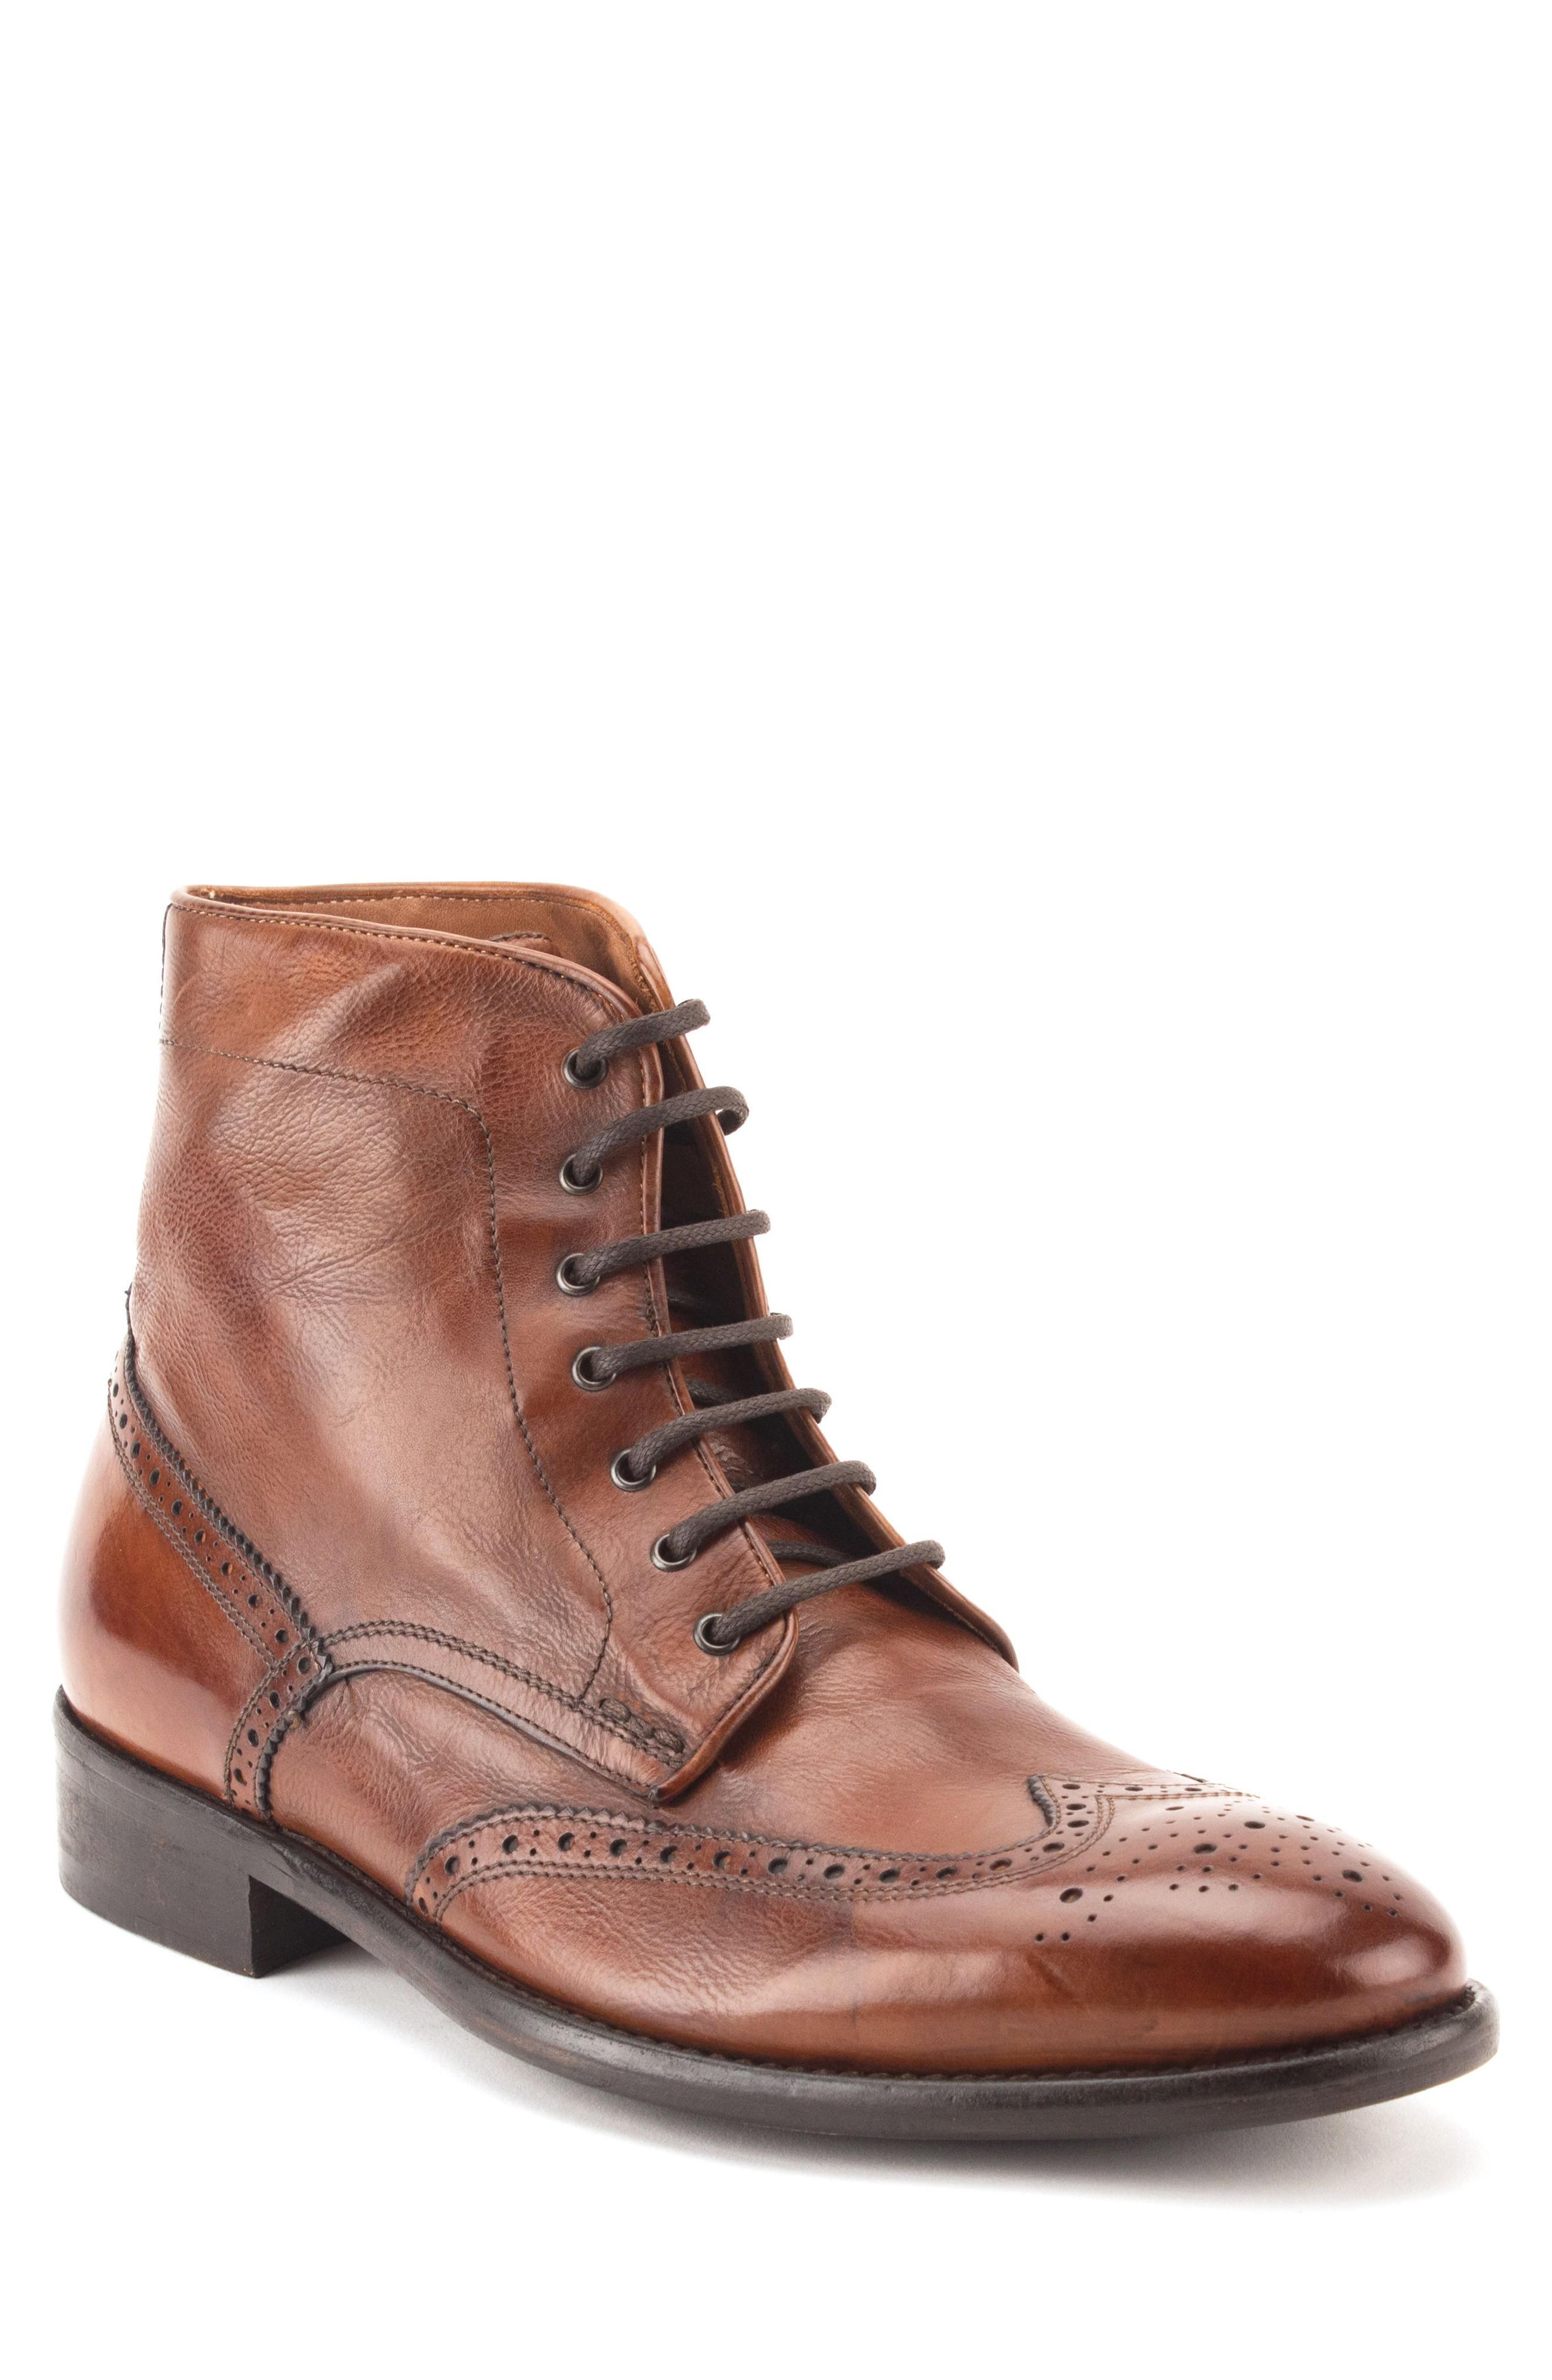 d8a621c2997 Maxfield Wingtip Boot in Cognac Leather